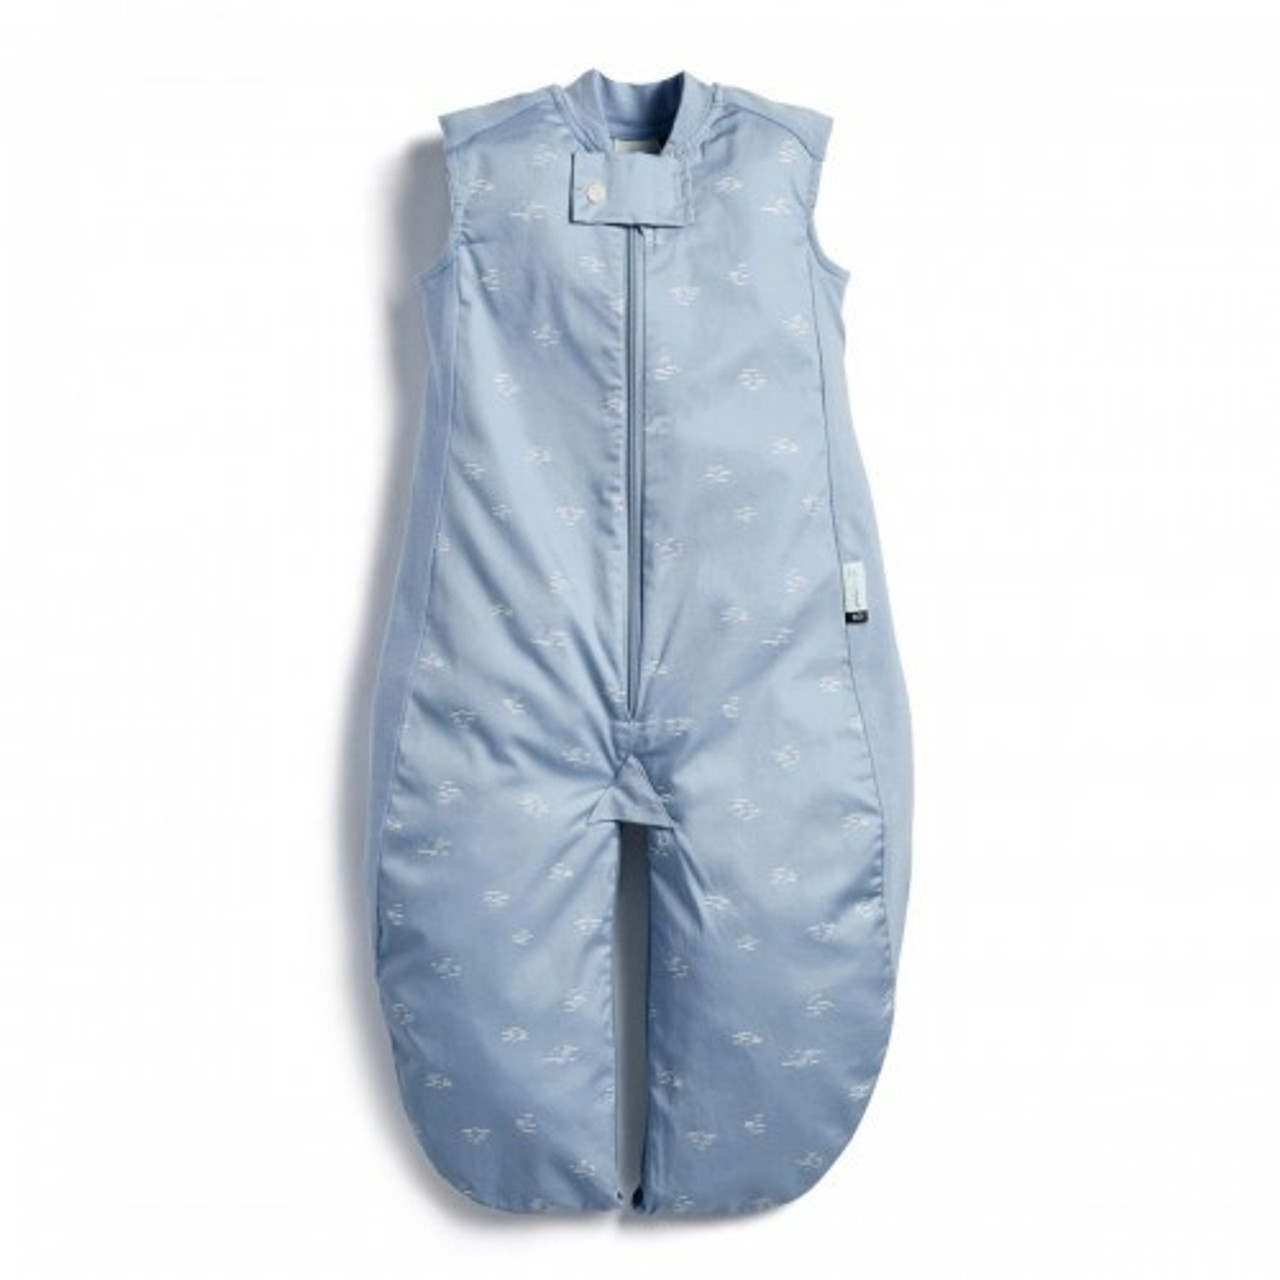 Ergopouch Sleep Suit Bag 0.3 Tog 2-4 Years RIPPLE at Baby Barn Discounts Ergopouch Sleep Suit Bag converts from a sleeping bag to a suit with legs using zippers.